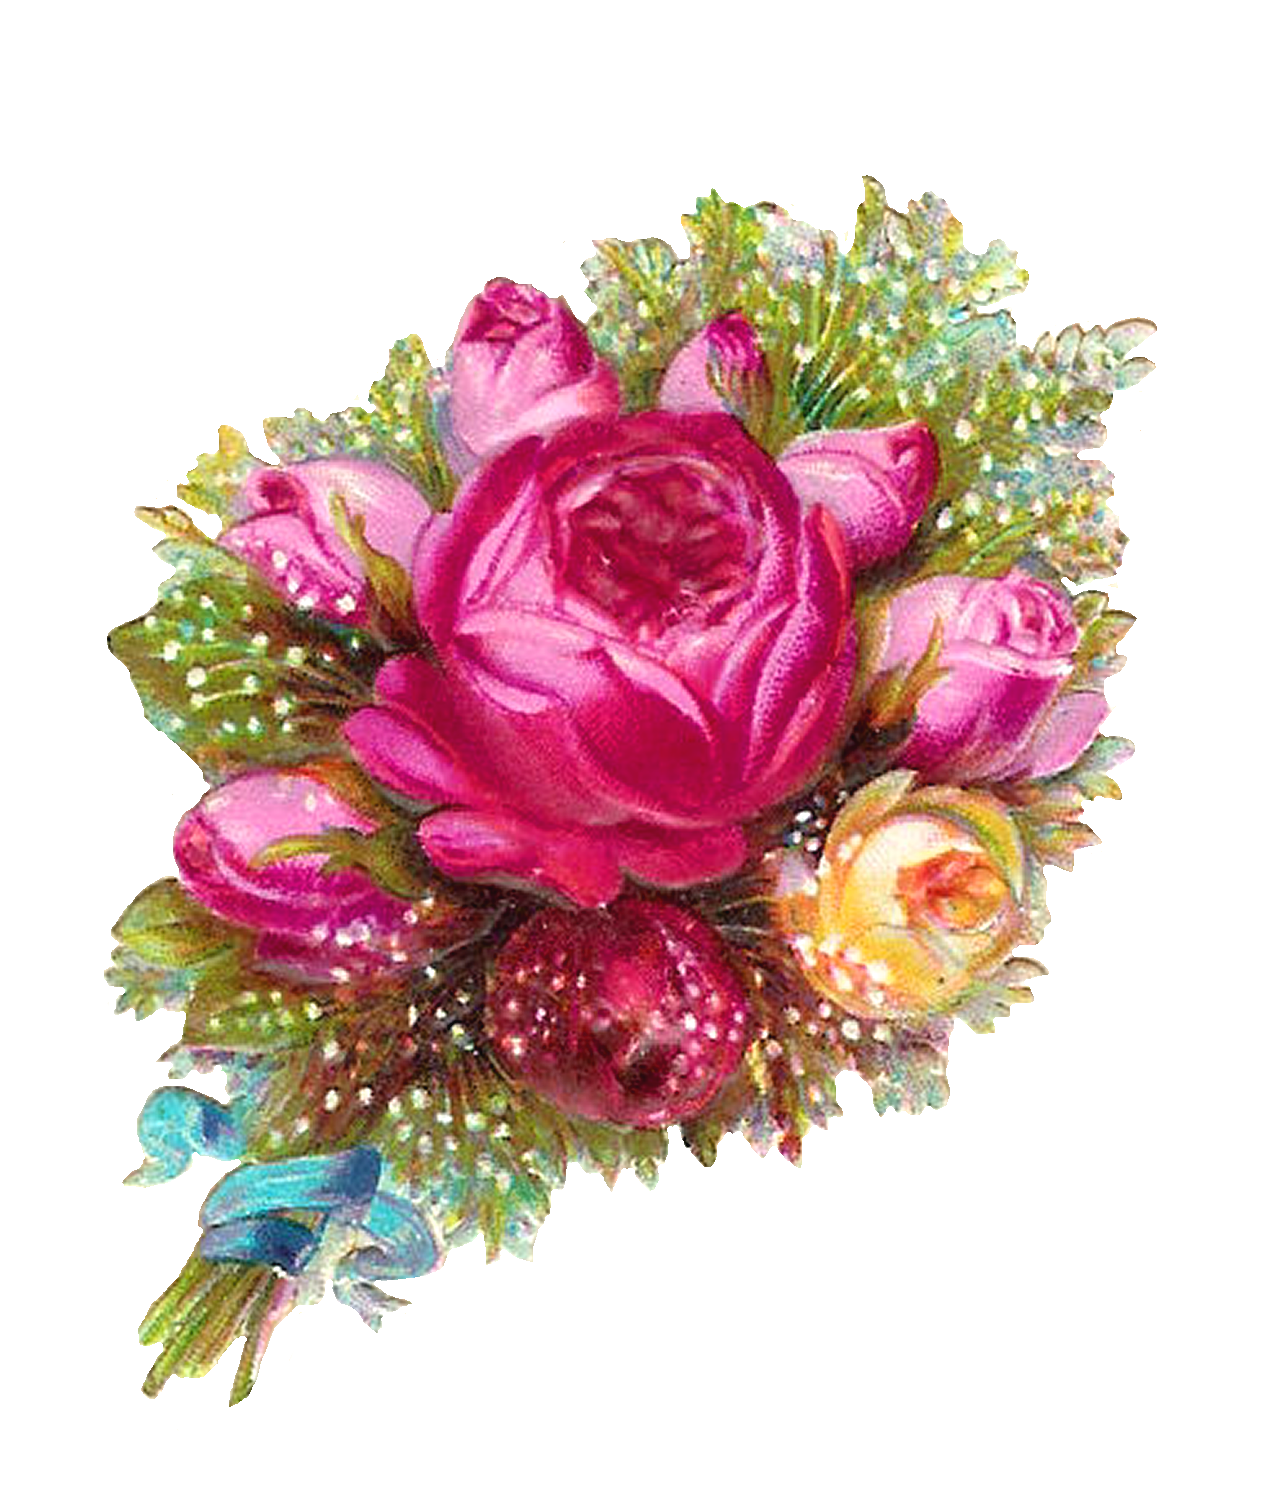 Images free download pngmart. Transparent png bouquet of flowers royalty free